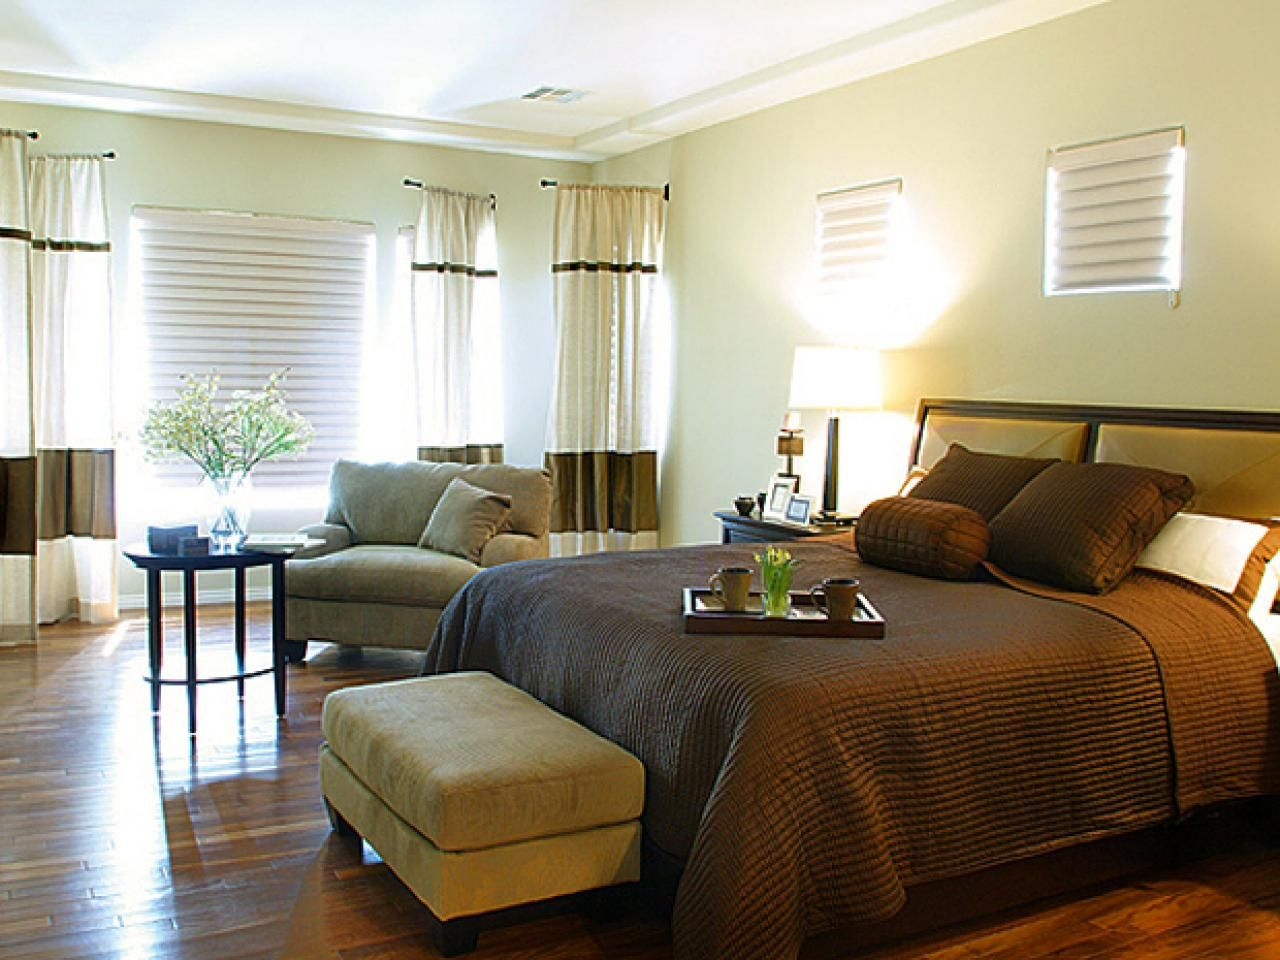 designing a bedroom layout home interior design Master Bathroom Layout Plans Master Bathroom Layout Plans